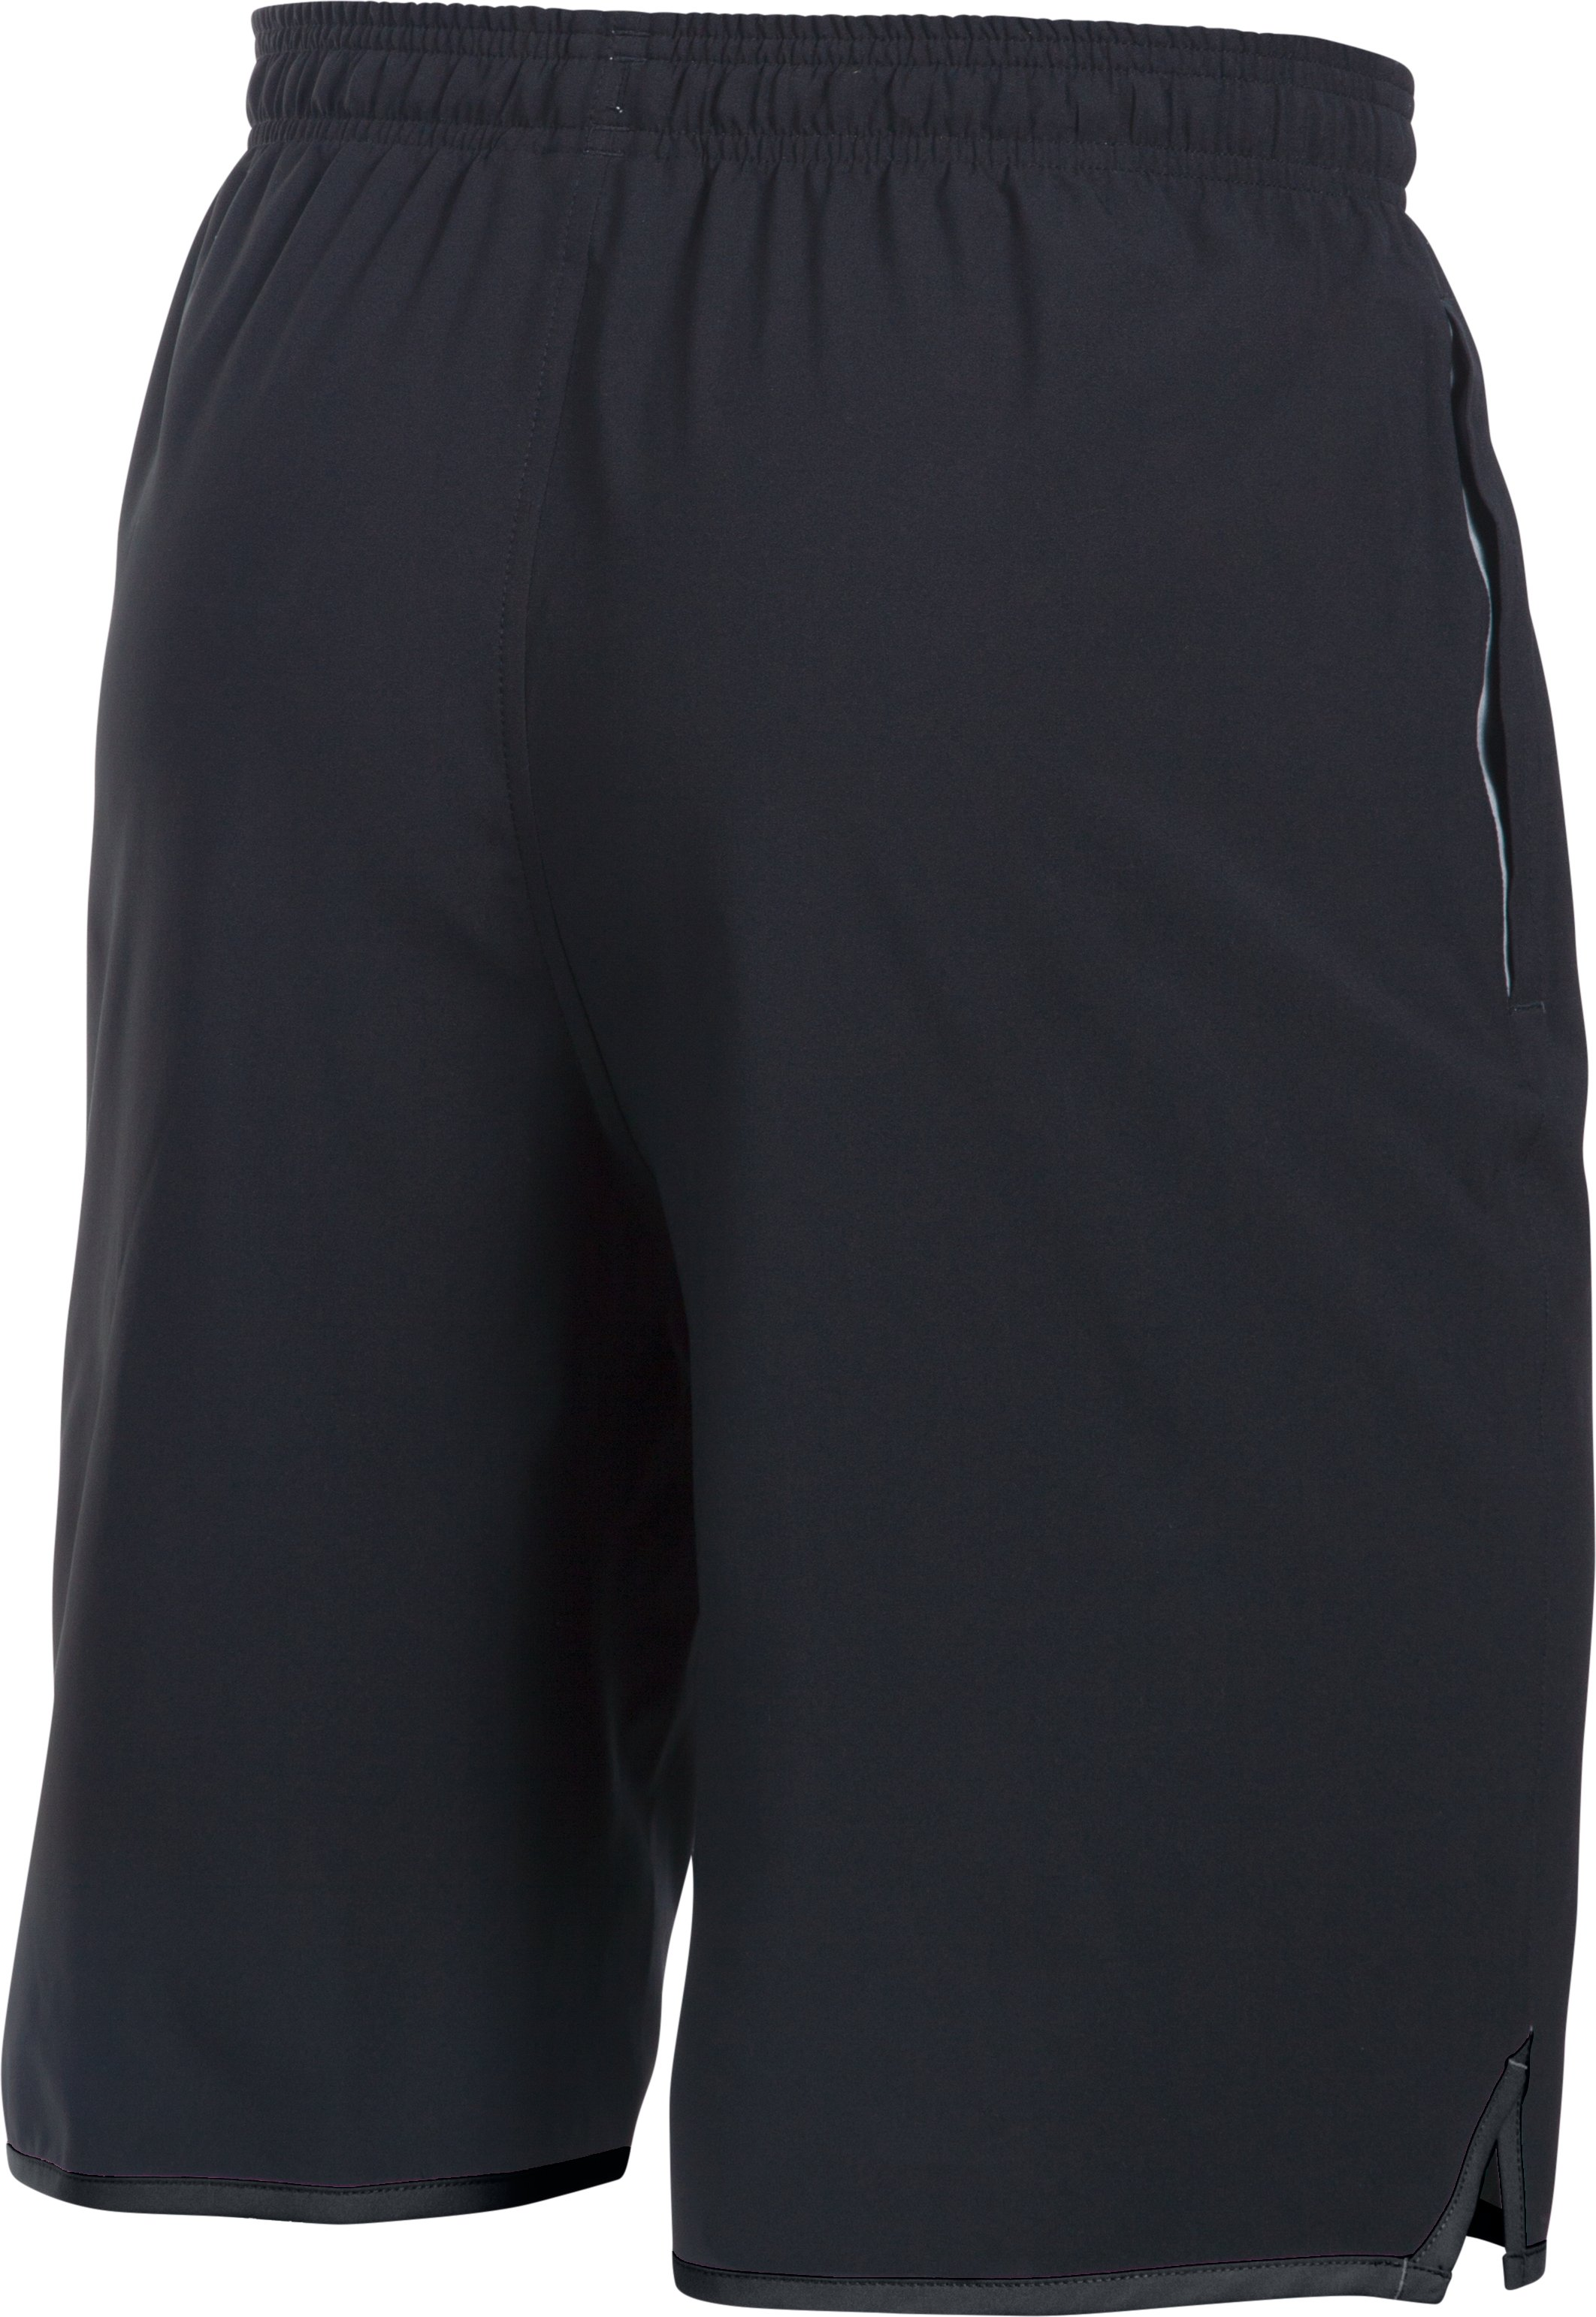 "Men's UA Qualifier 9"" Woven Shorts, Black ,"